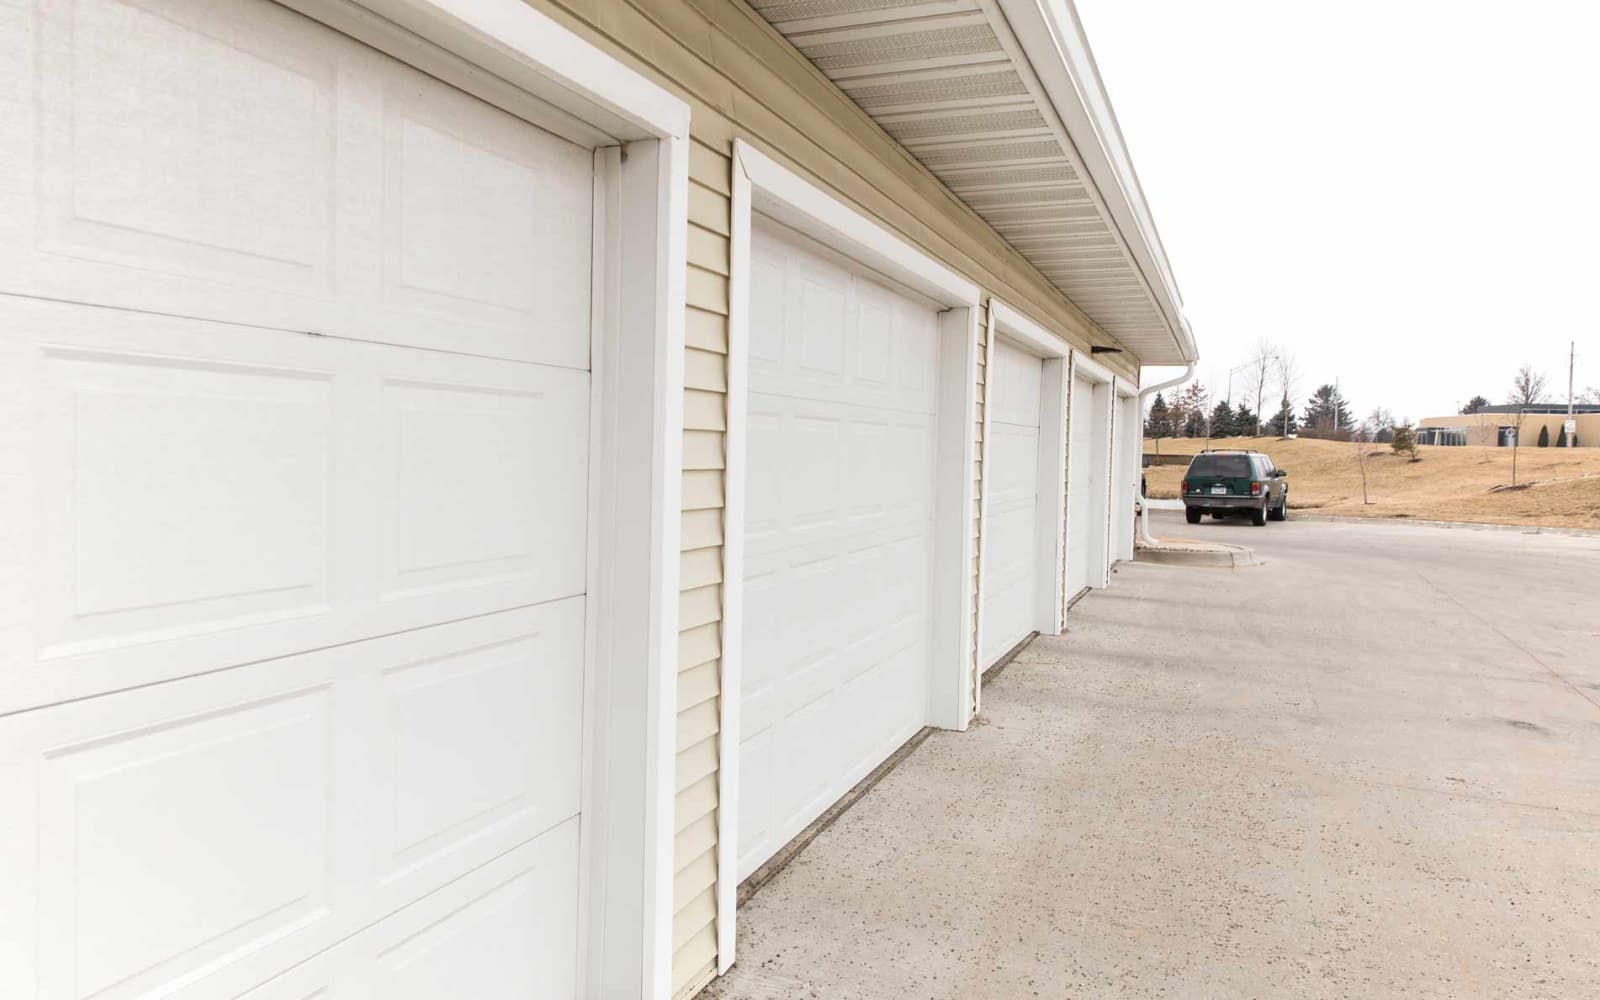 Resident garages at Woodland Reserve in Ankeny, Iowa